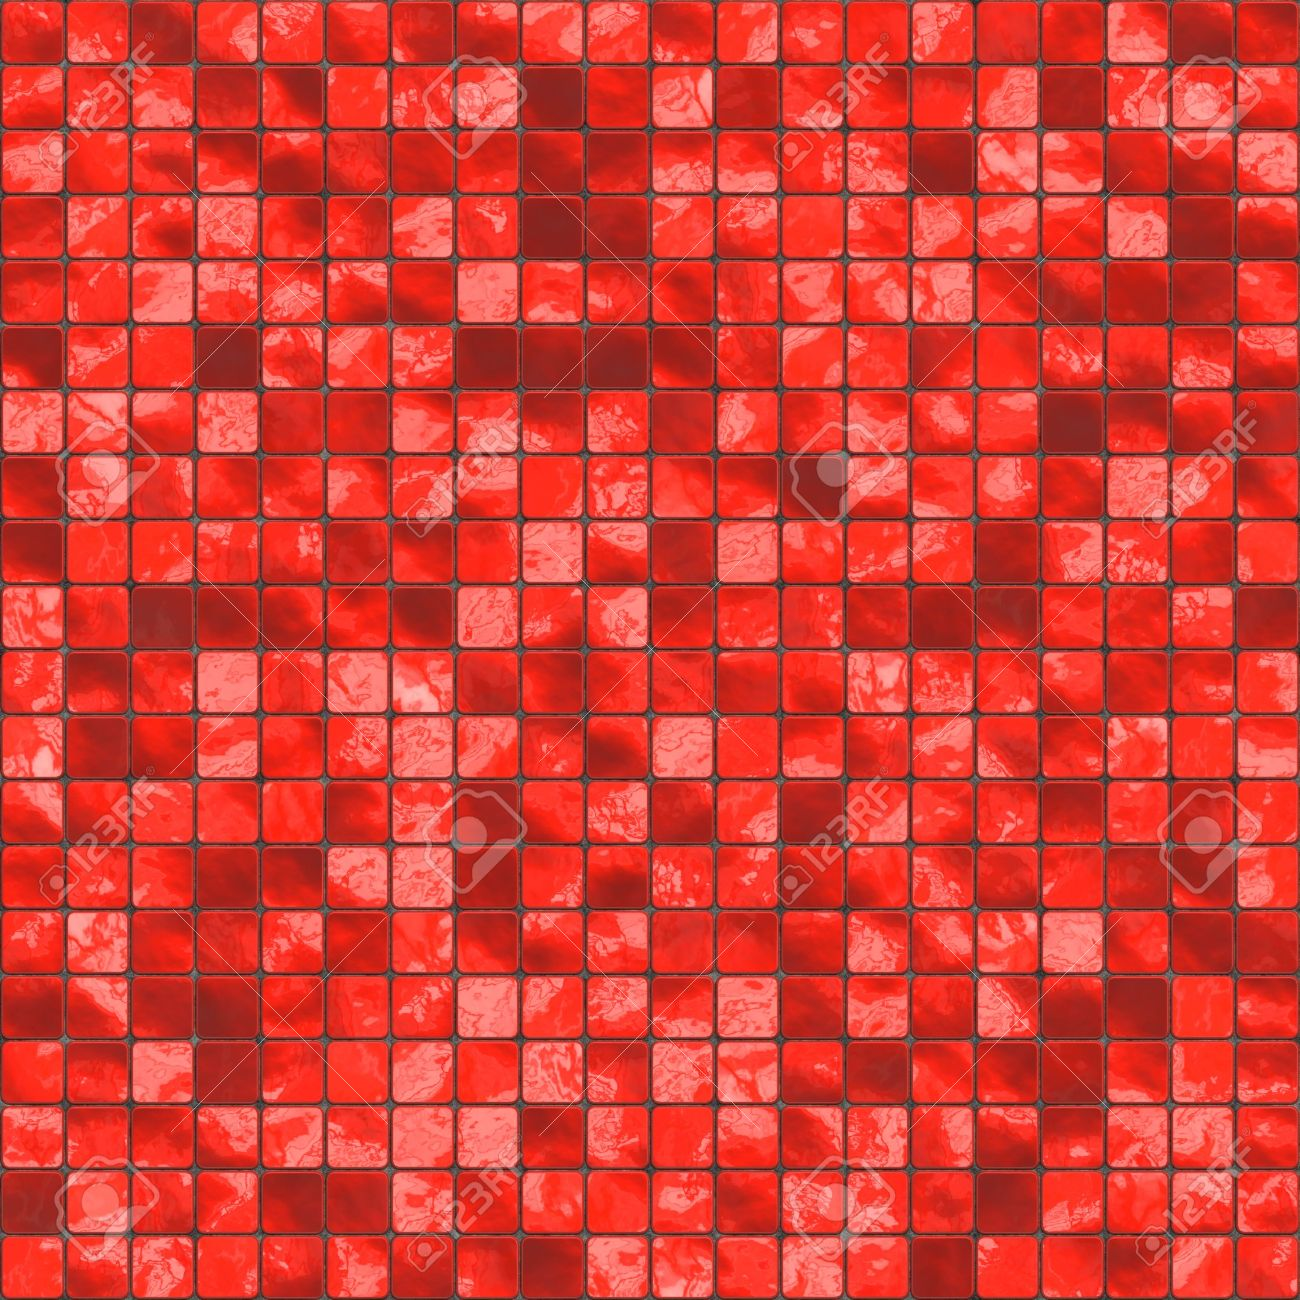 Red ceramic tile red ceramic tiles will tile seamless as a pattern stock photo dailygadgetfo Choice Image